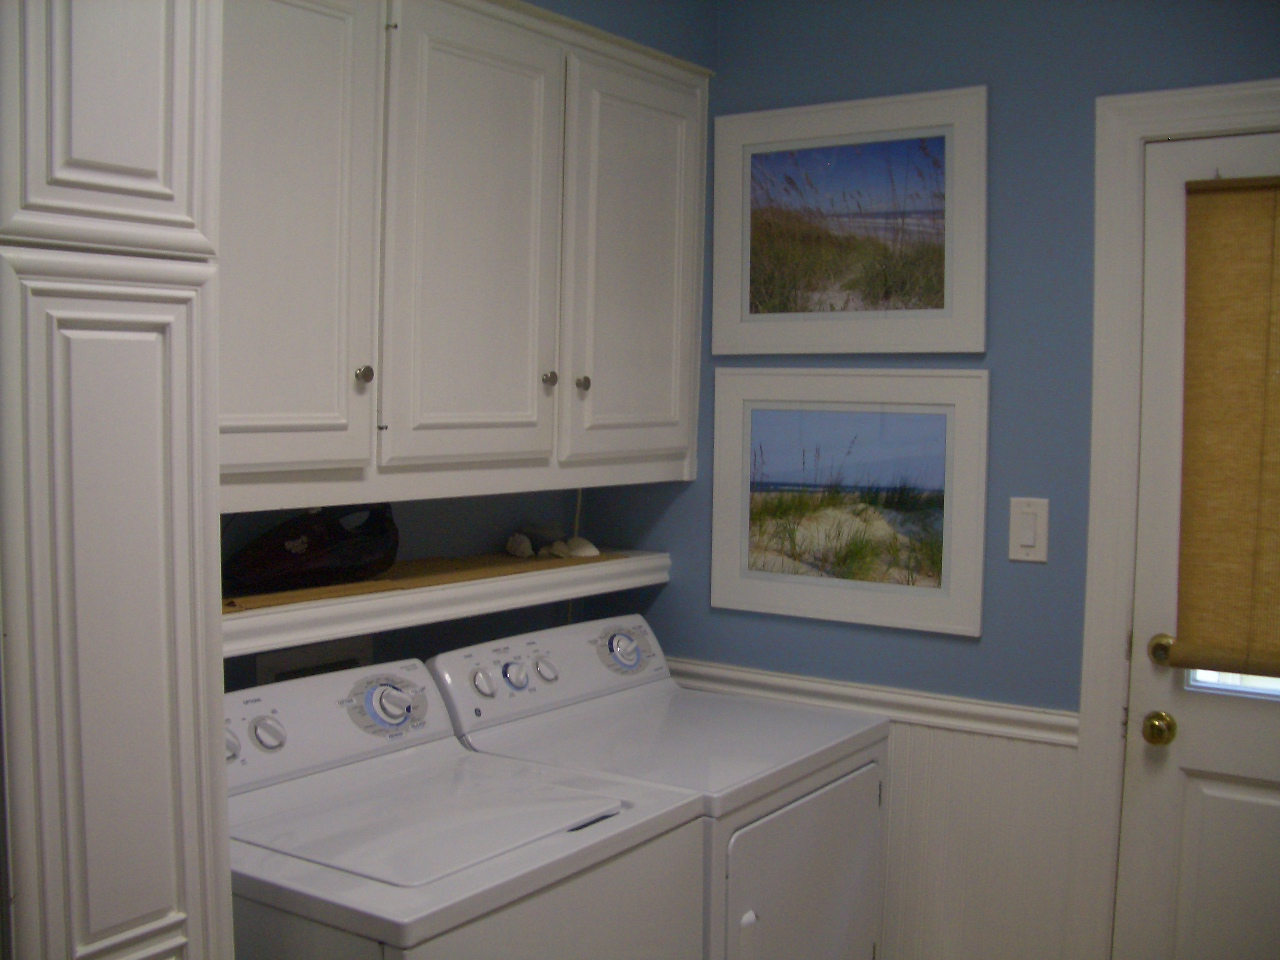 Inspiration Over-the washer/dryer shelf in our old home & CasaLupoli: Laundry Room Update: Over the Washer/Dryer Shelf